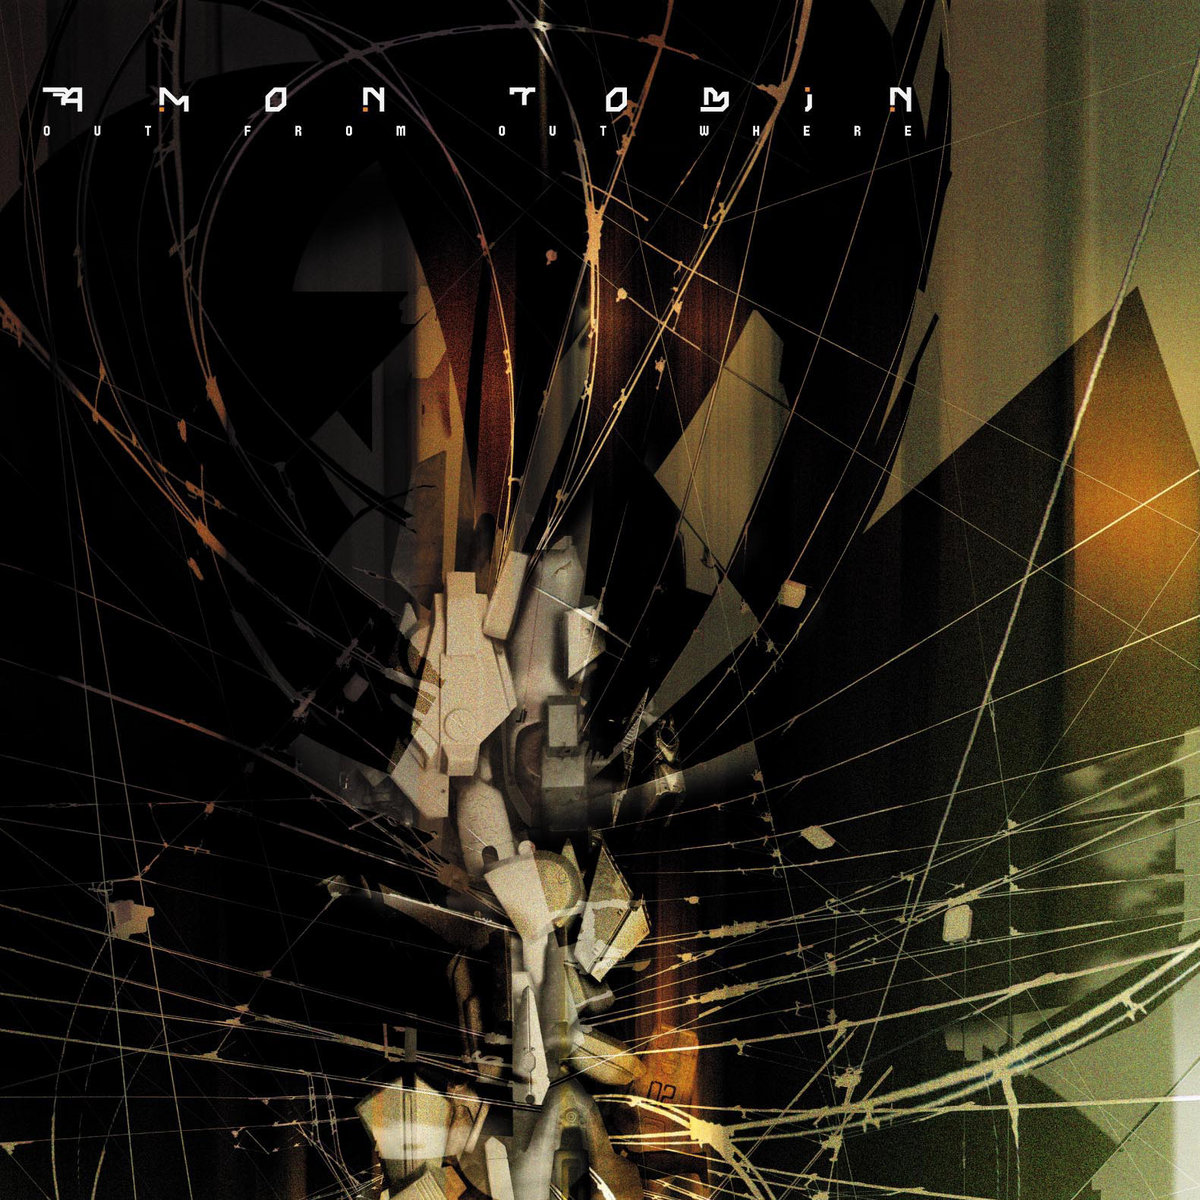 Out From Out Where | Amon Tobin